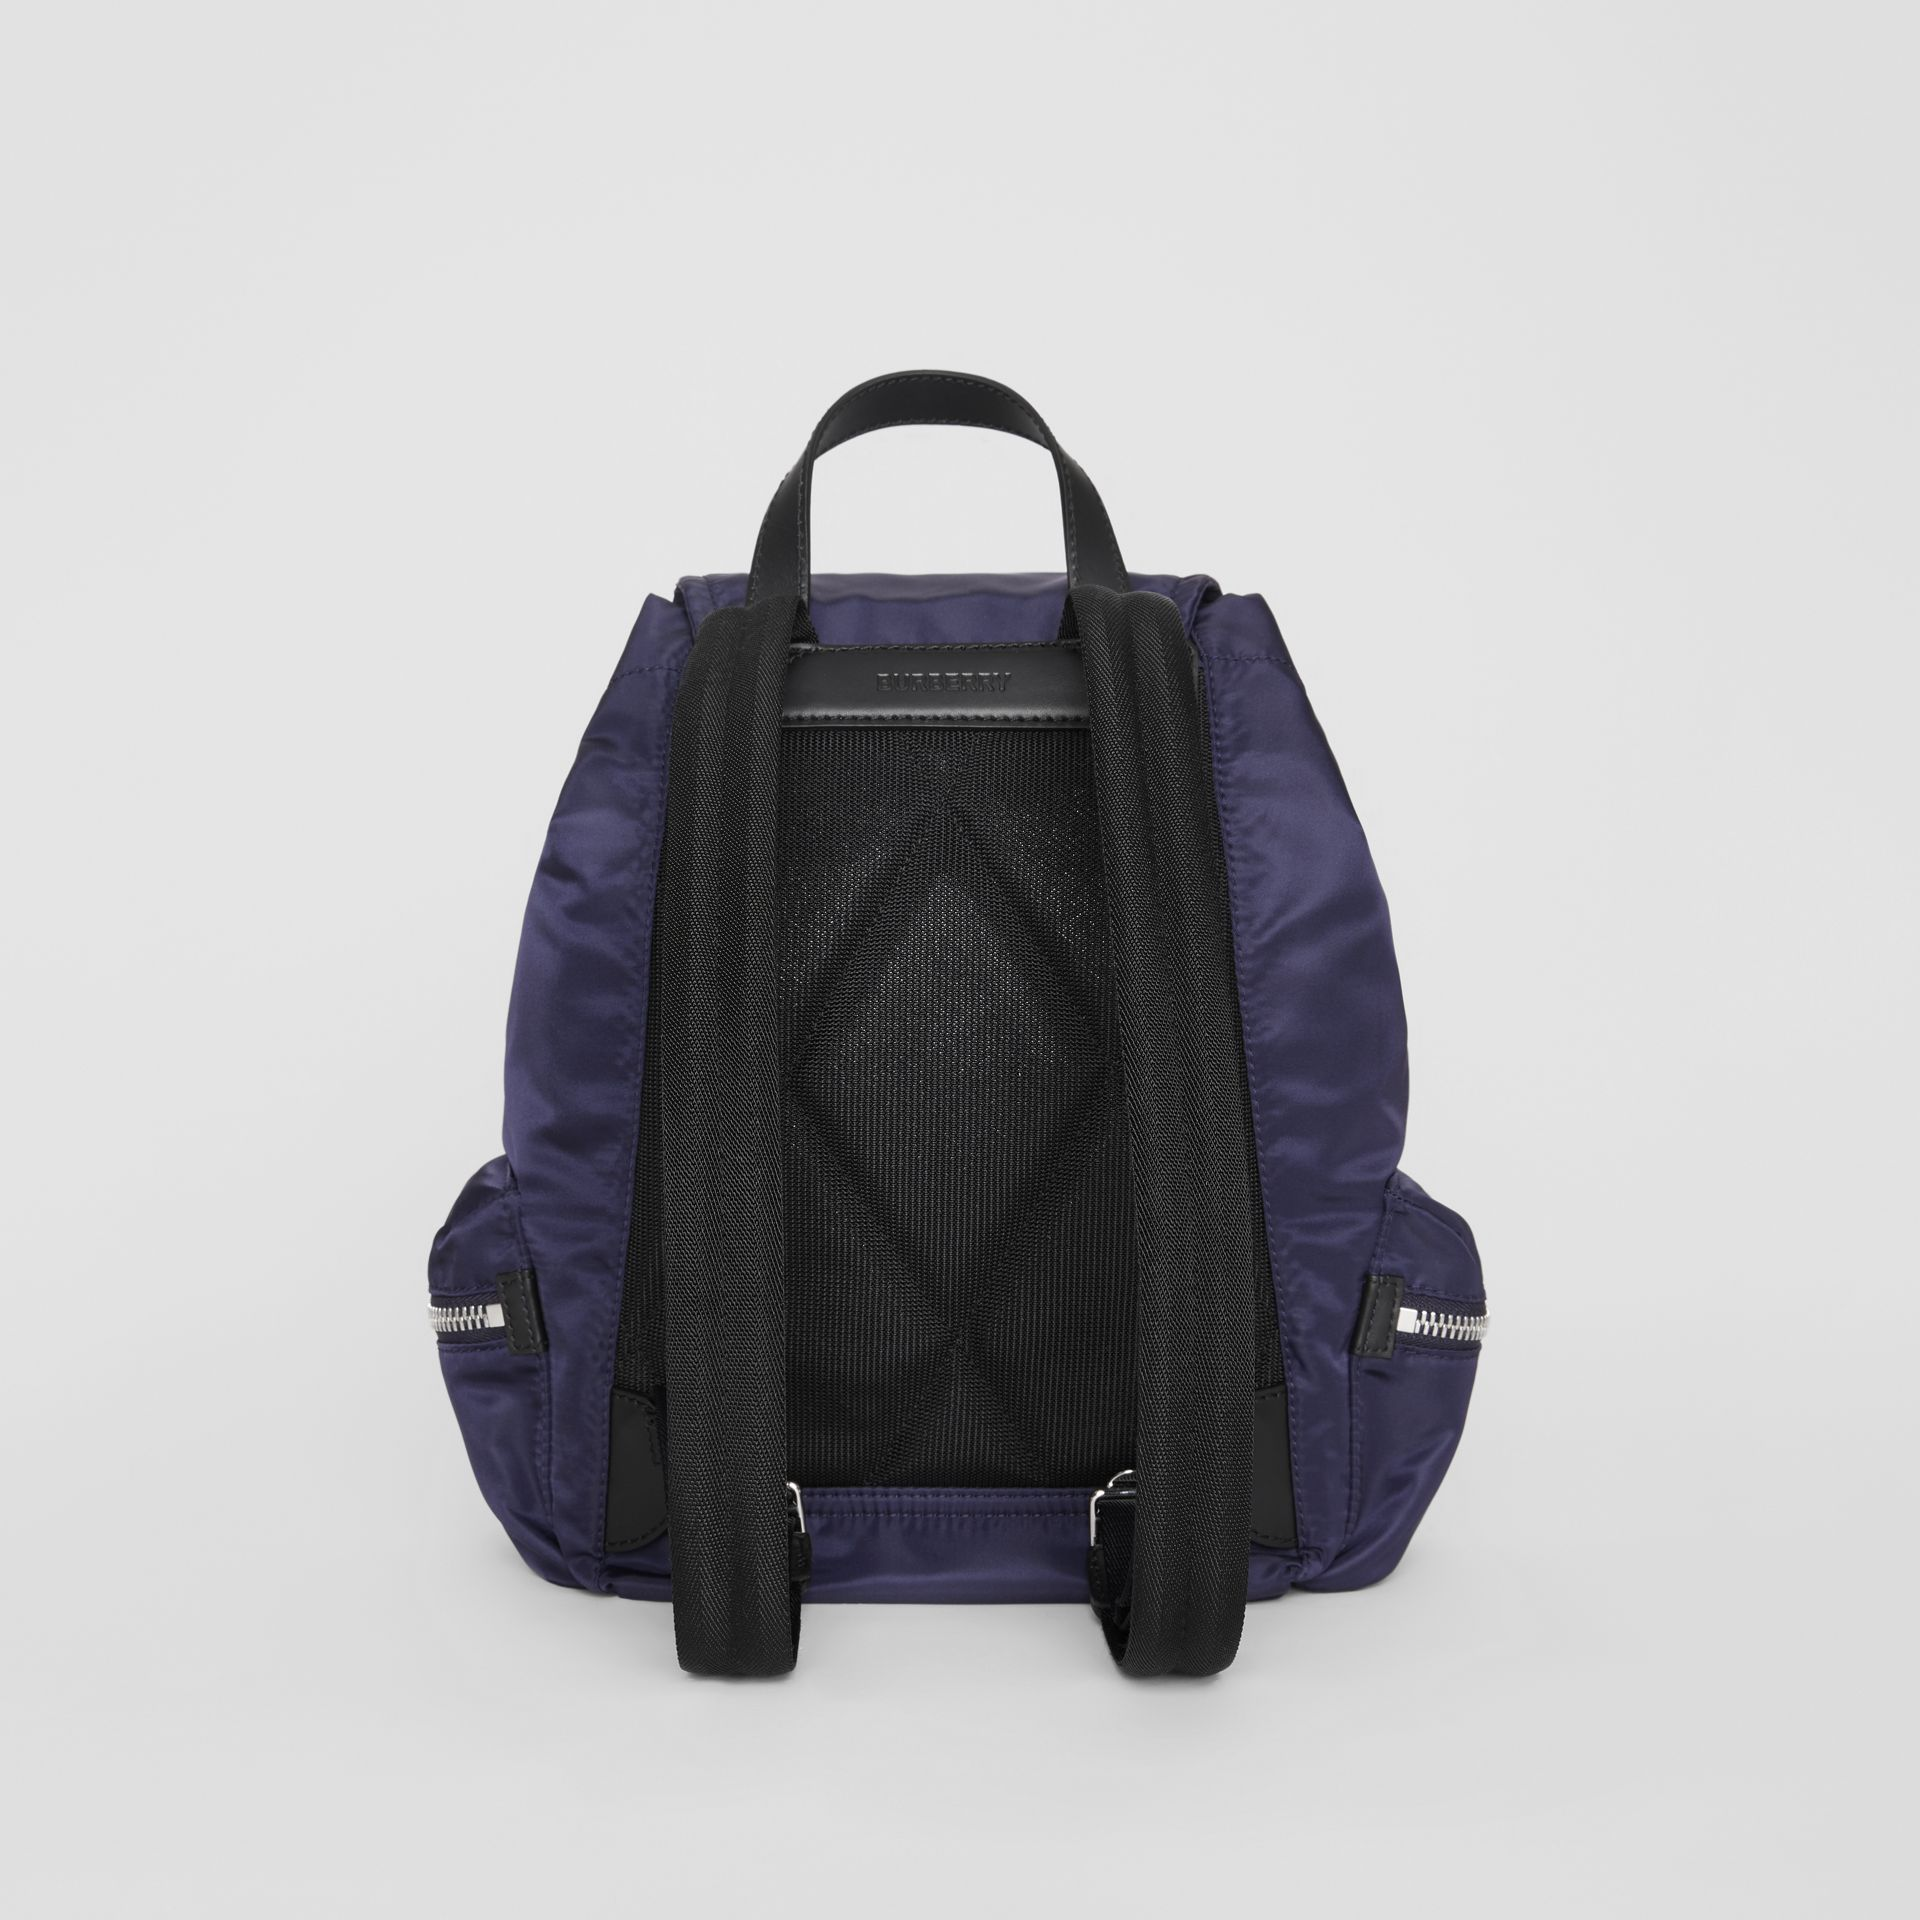 Zaino The Rucksack medio in nylon con logo (Blu Navy) - Donna | Burberry - immagine della galleria 5